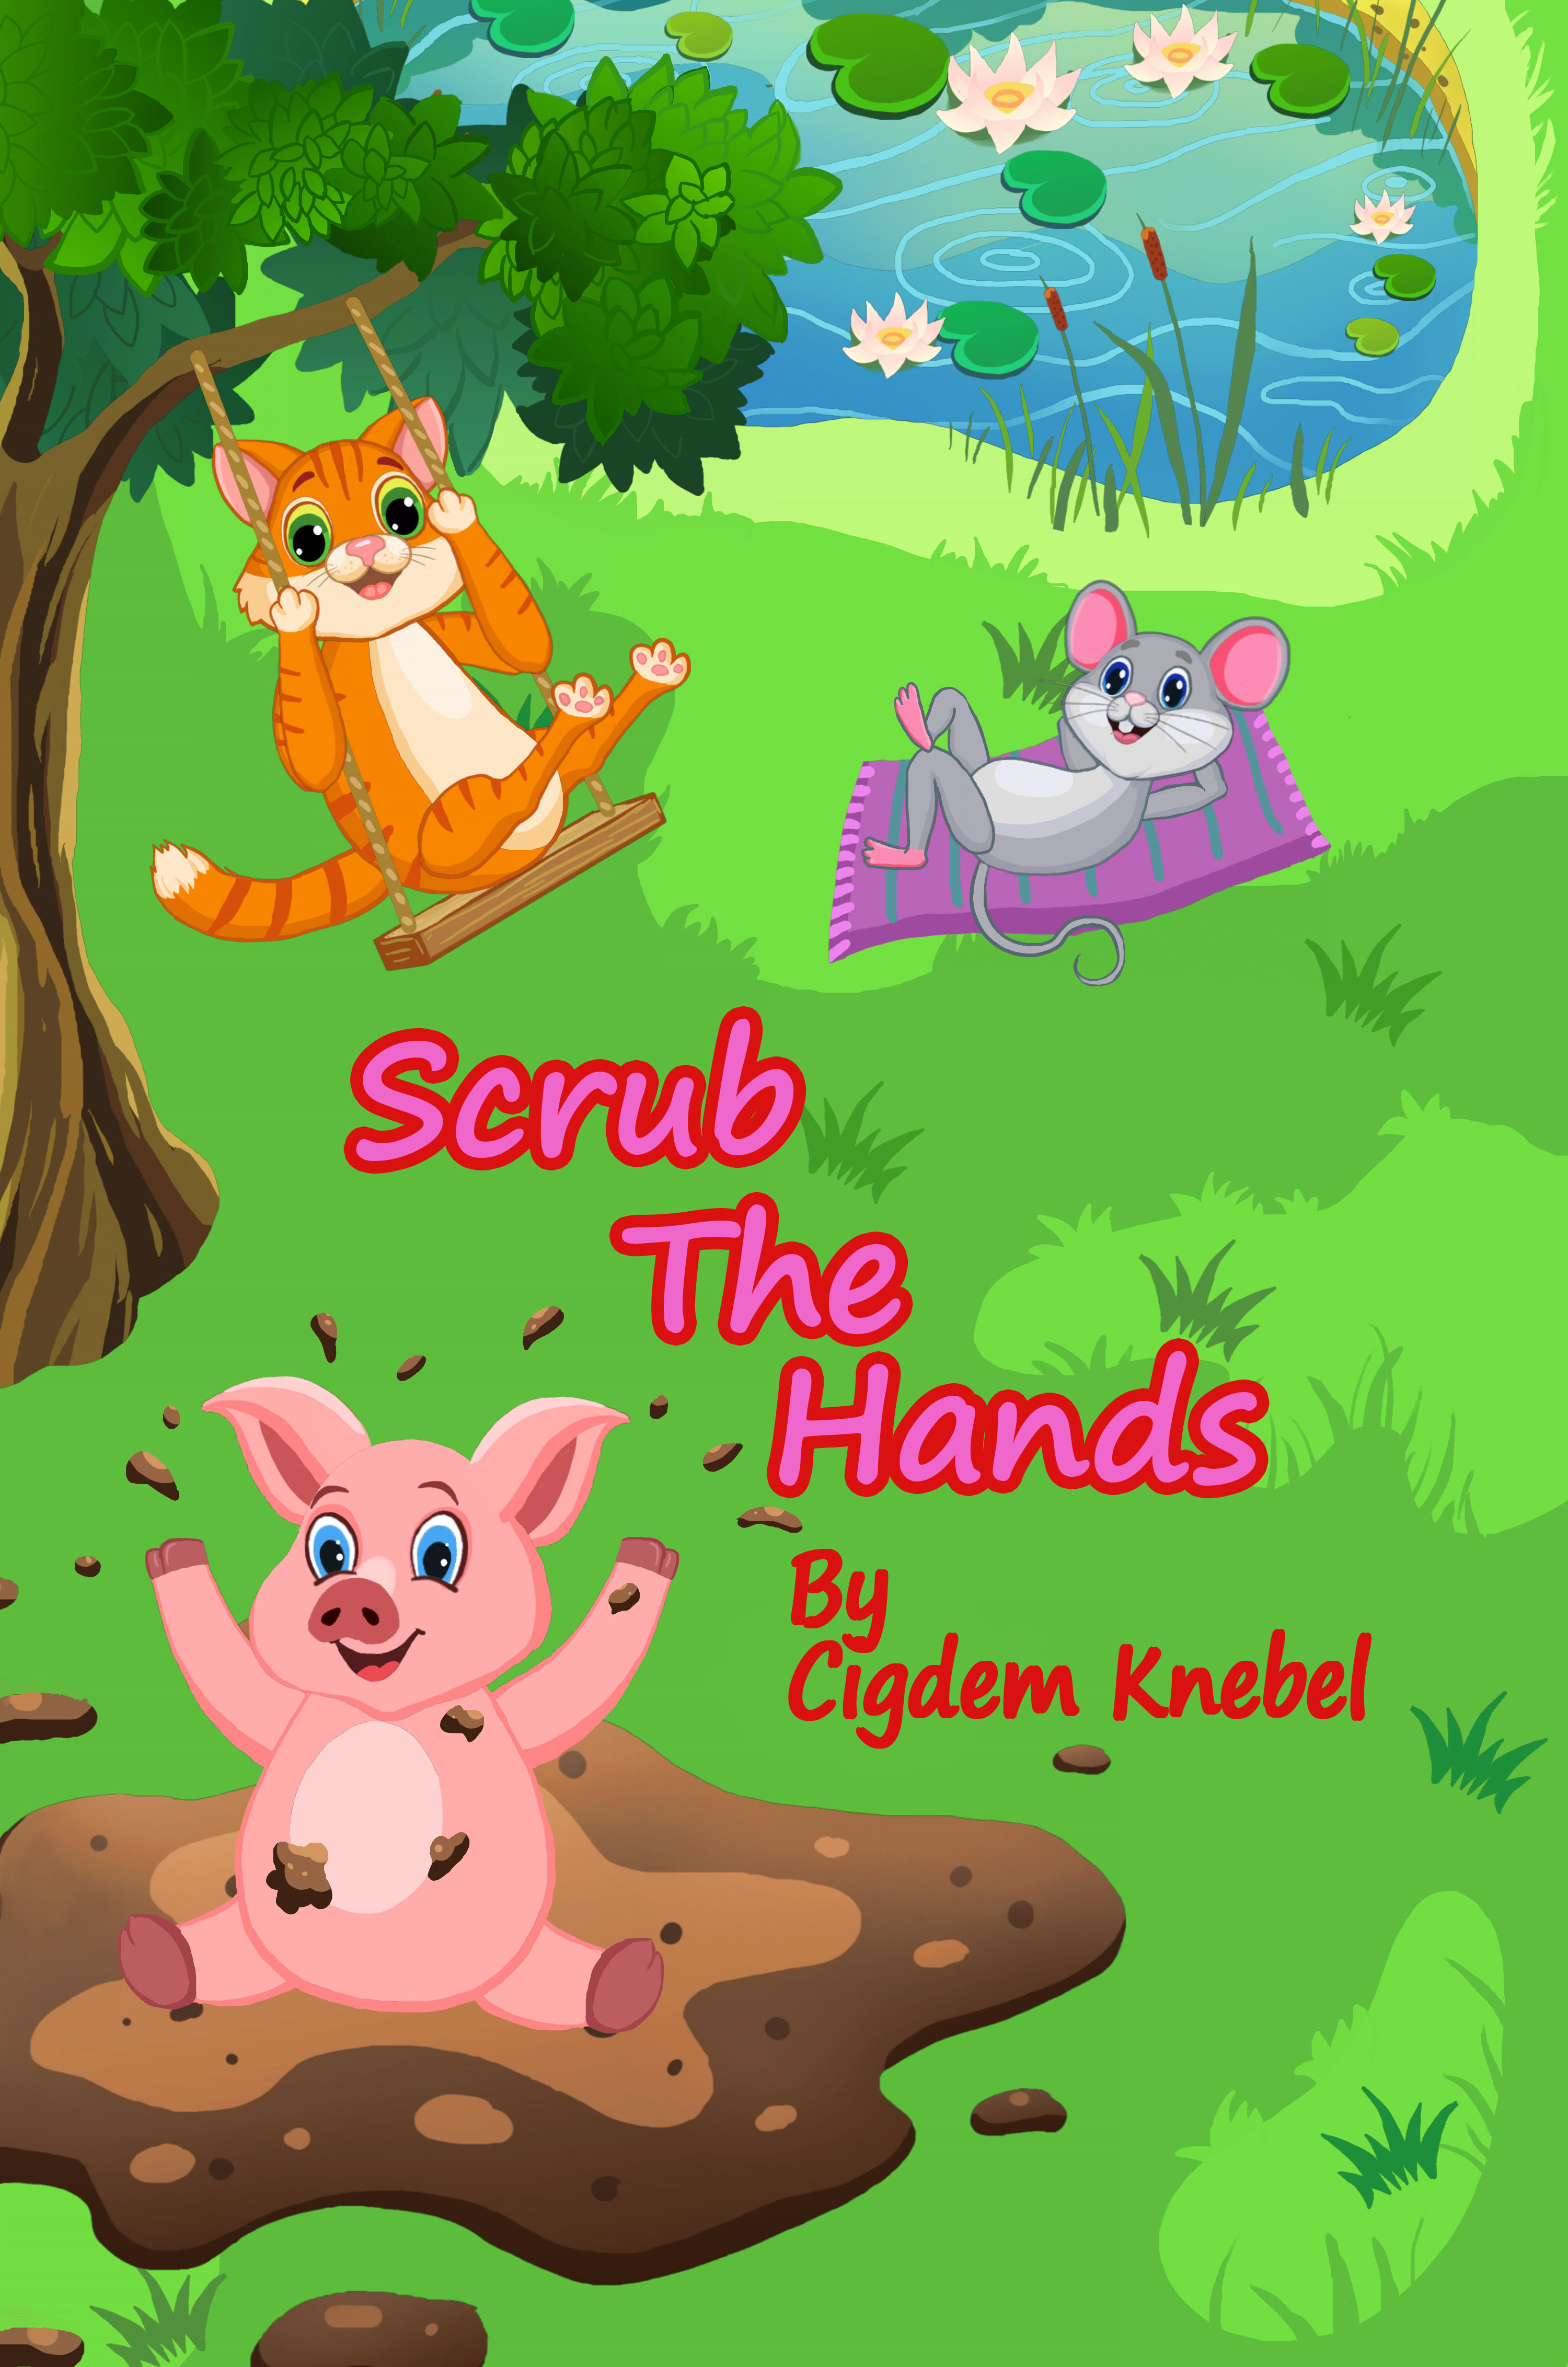 Scrub The Hands - Simple Words Books